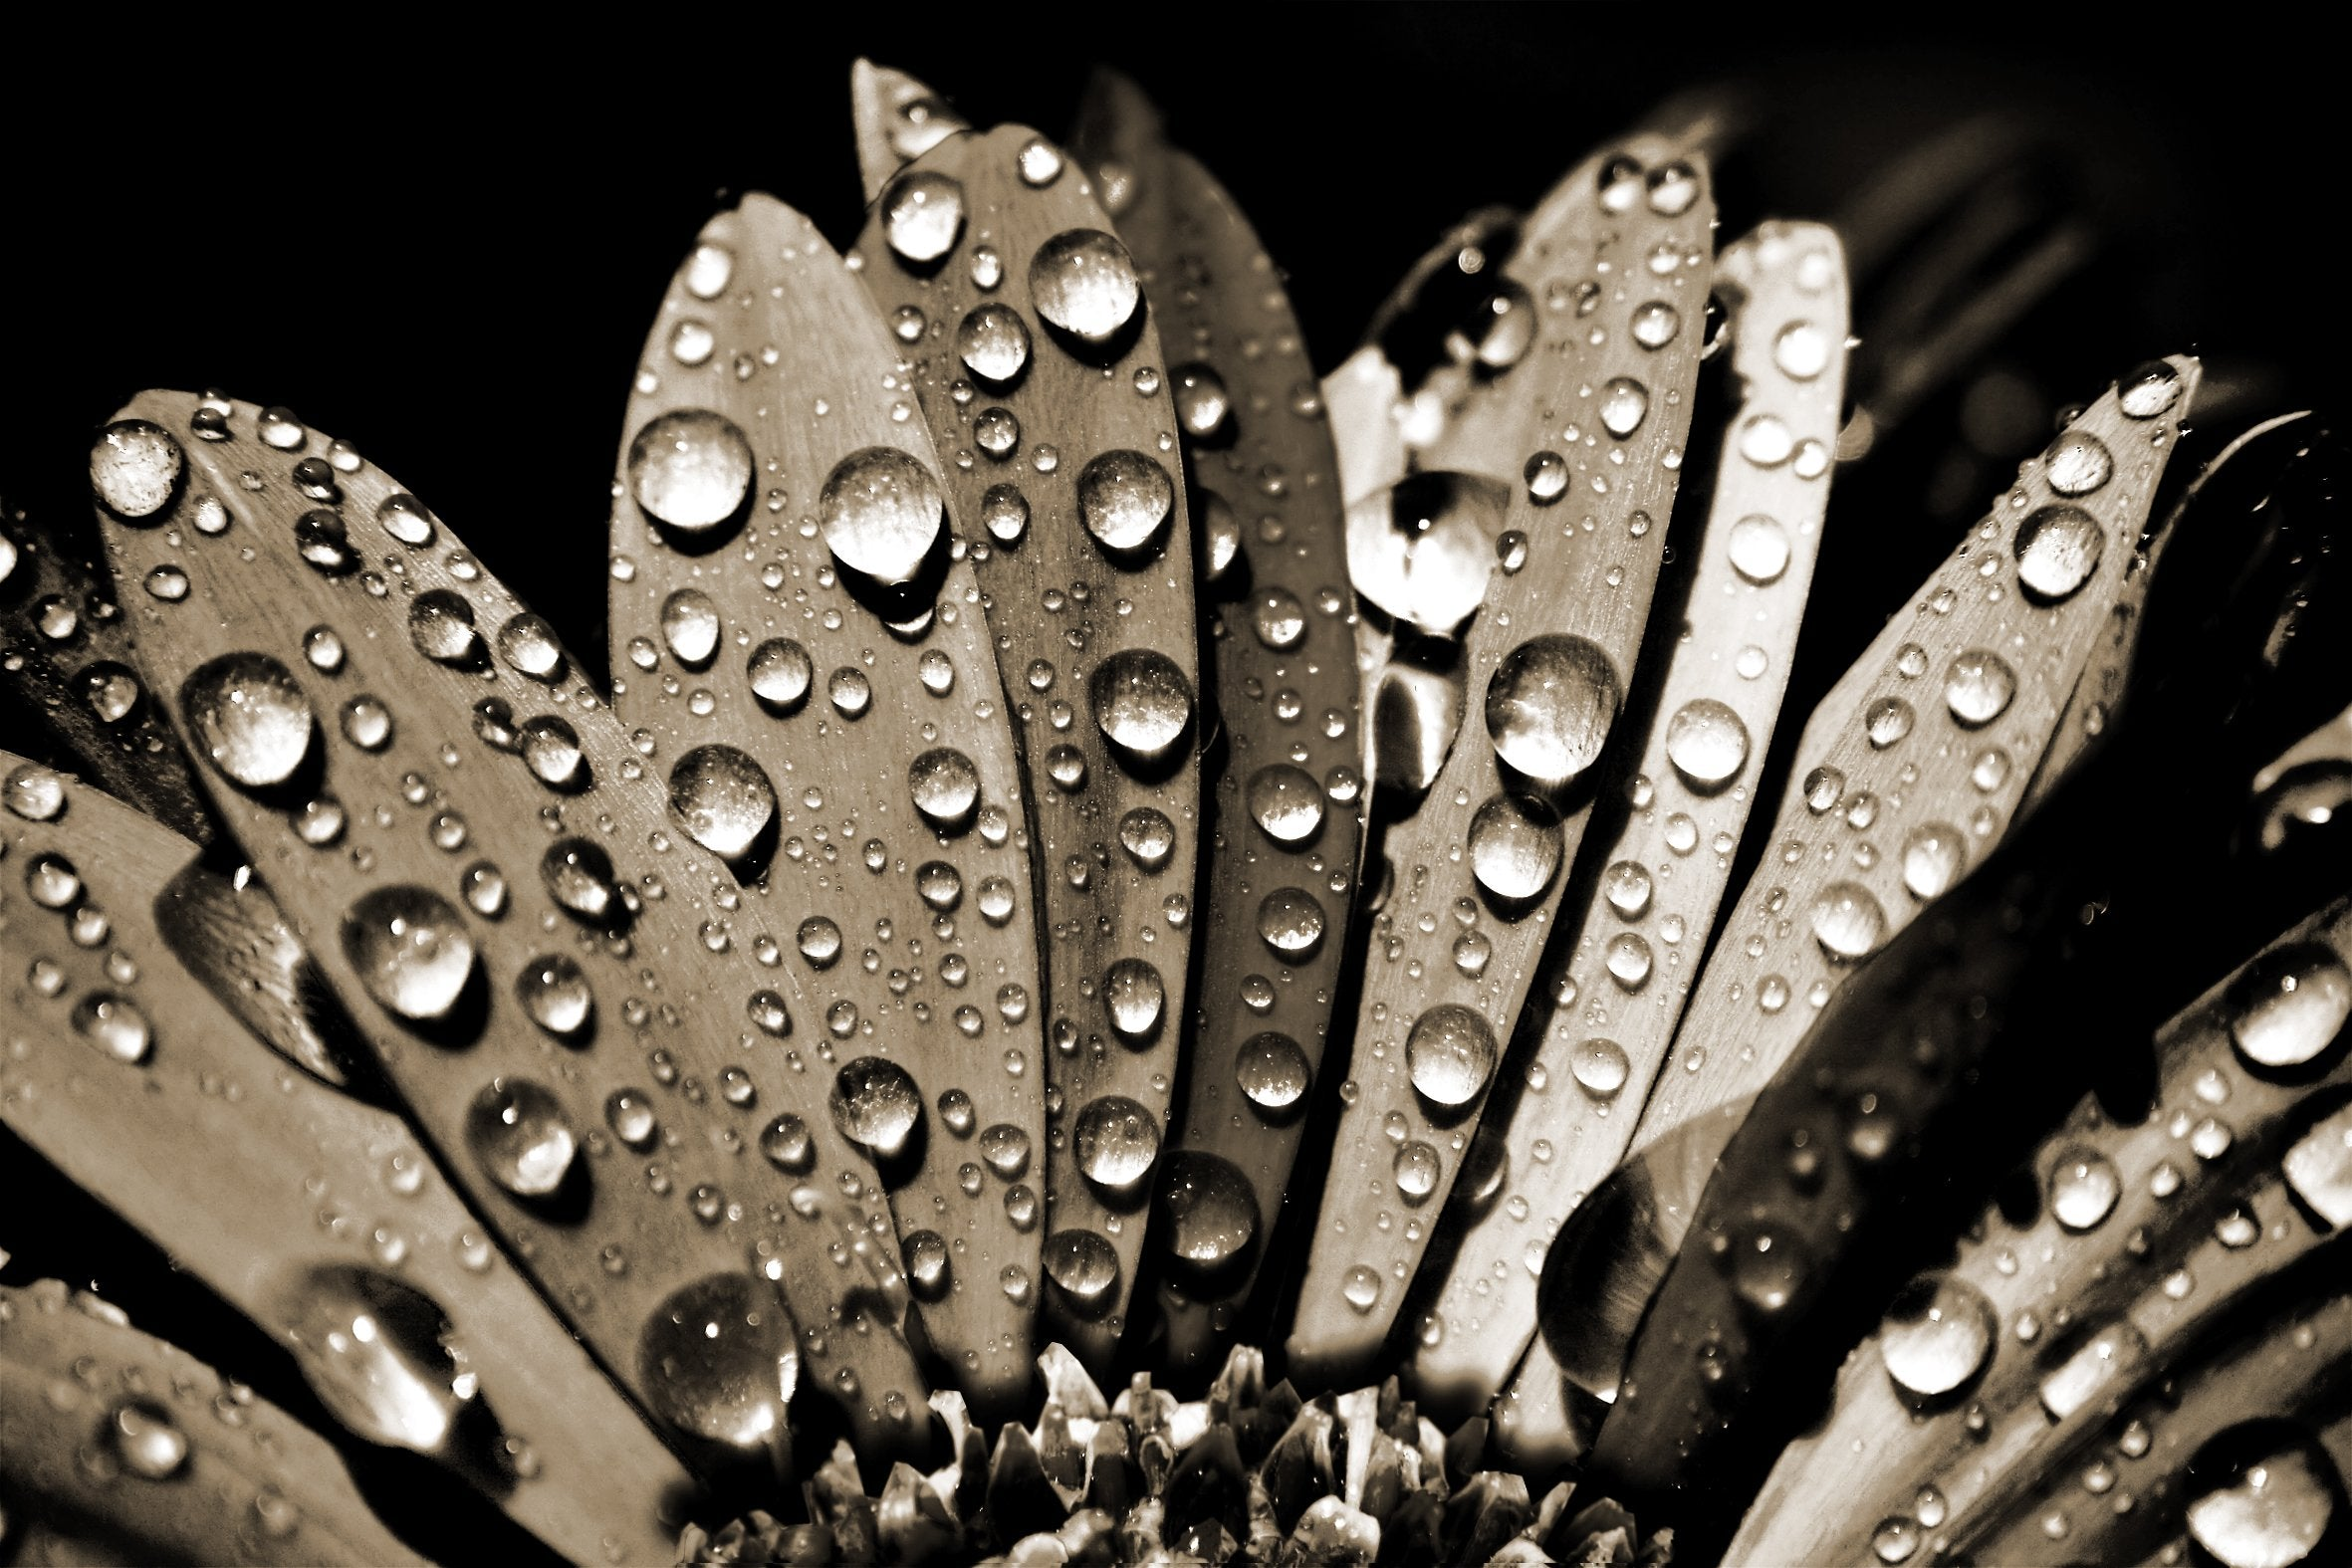 Close-Up Flower Photo Detailing Water Droplets on Petals